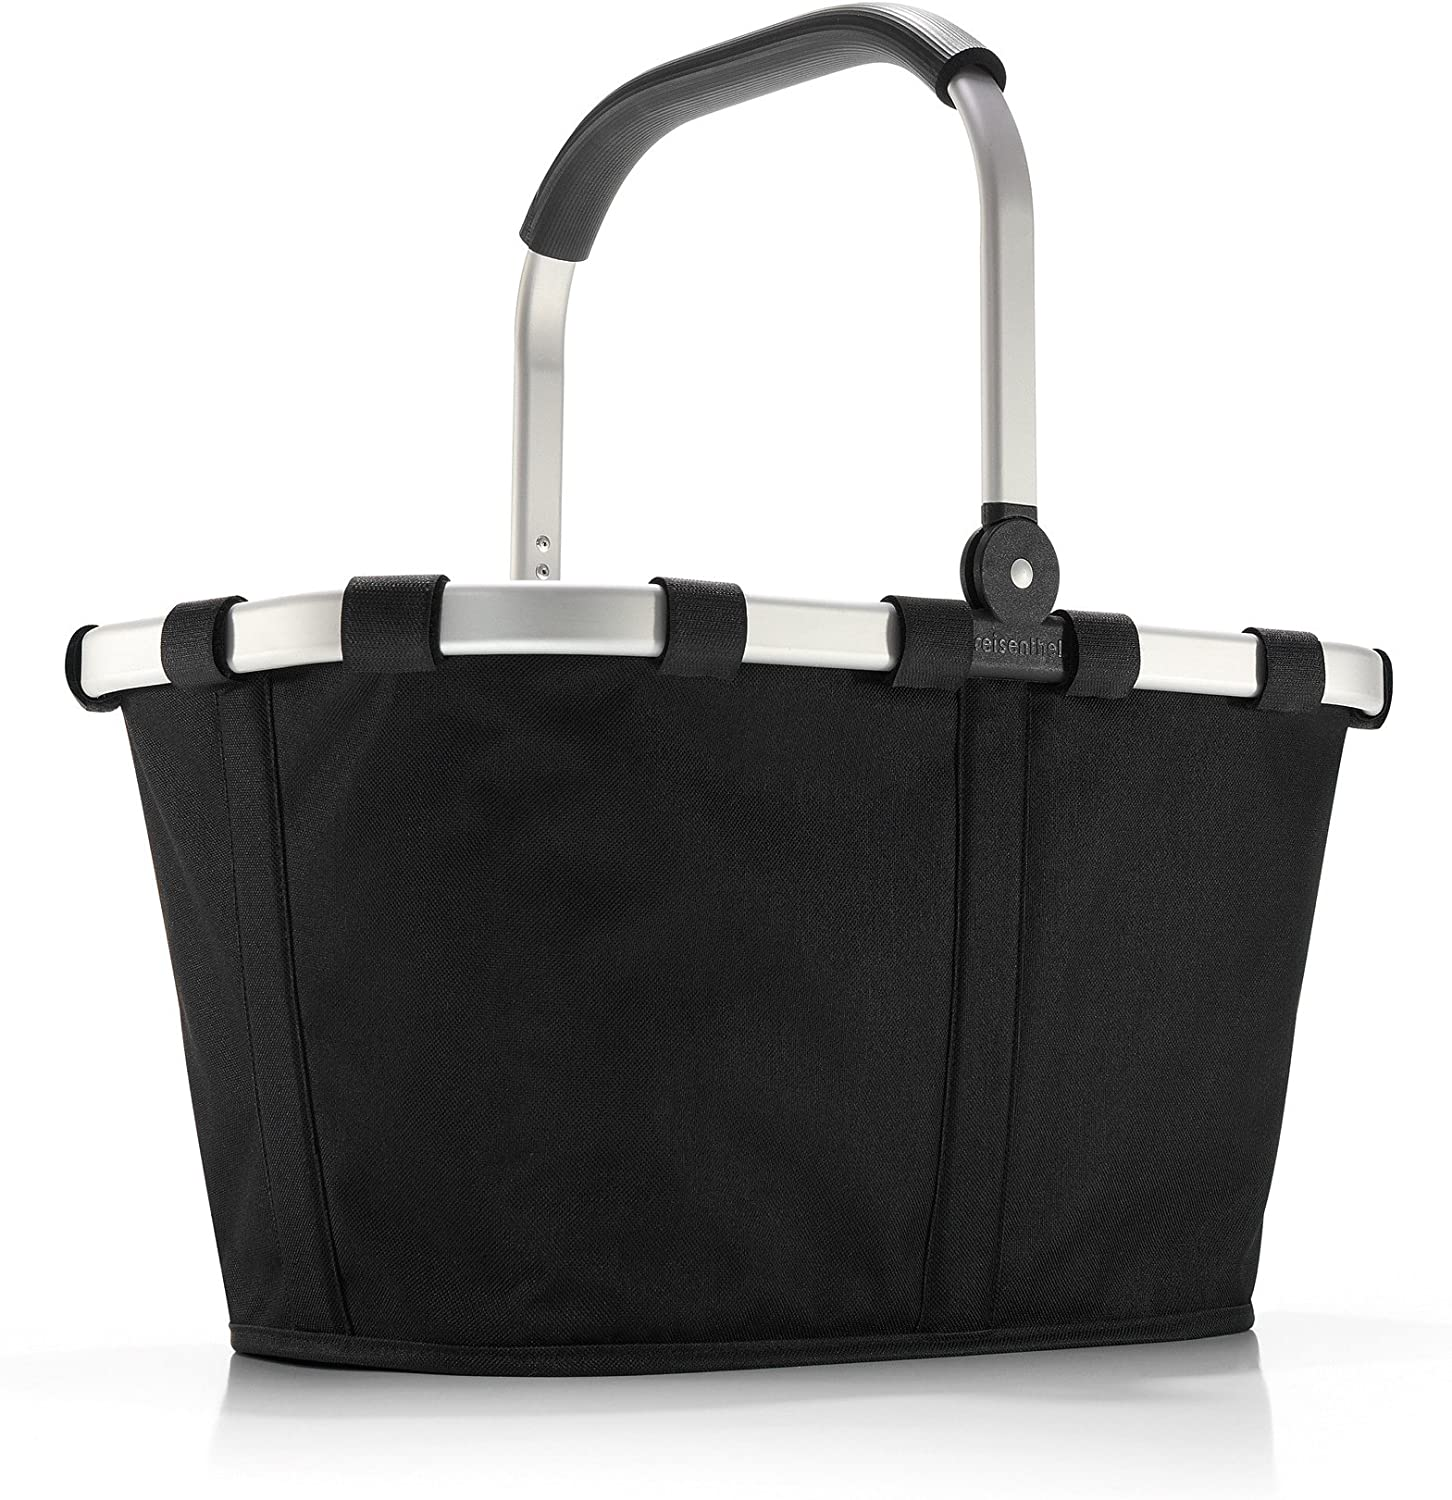 reisenthel Carrybag Fabric Picnic Tote, Sturdy Lightweight Basket for Shopping and Storage, Black